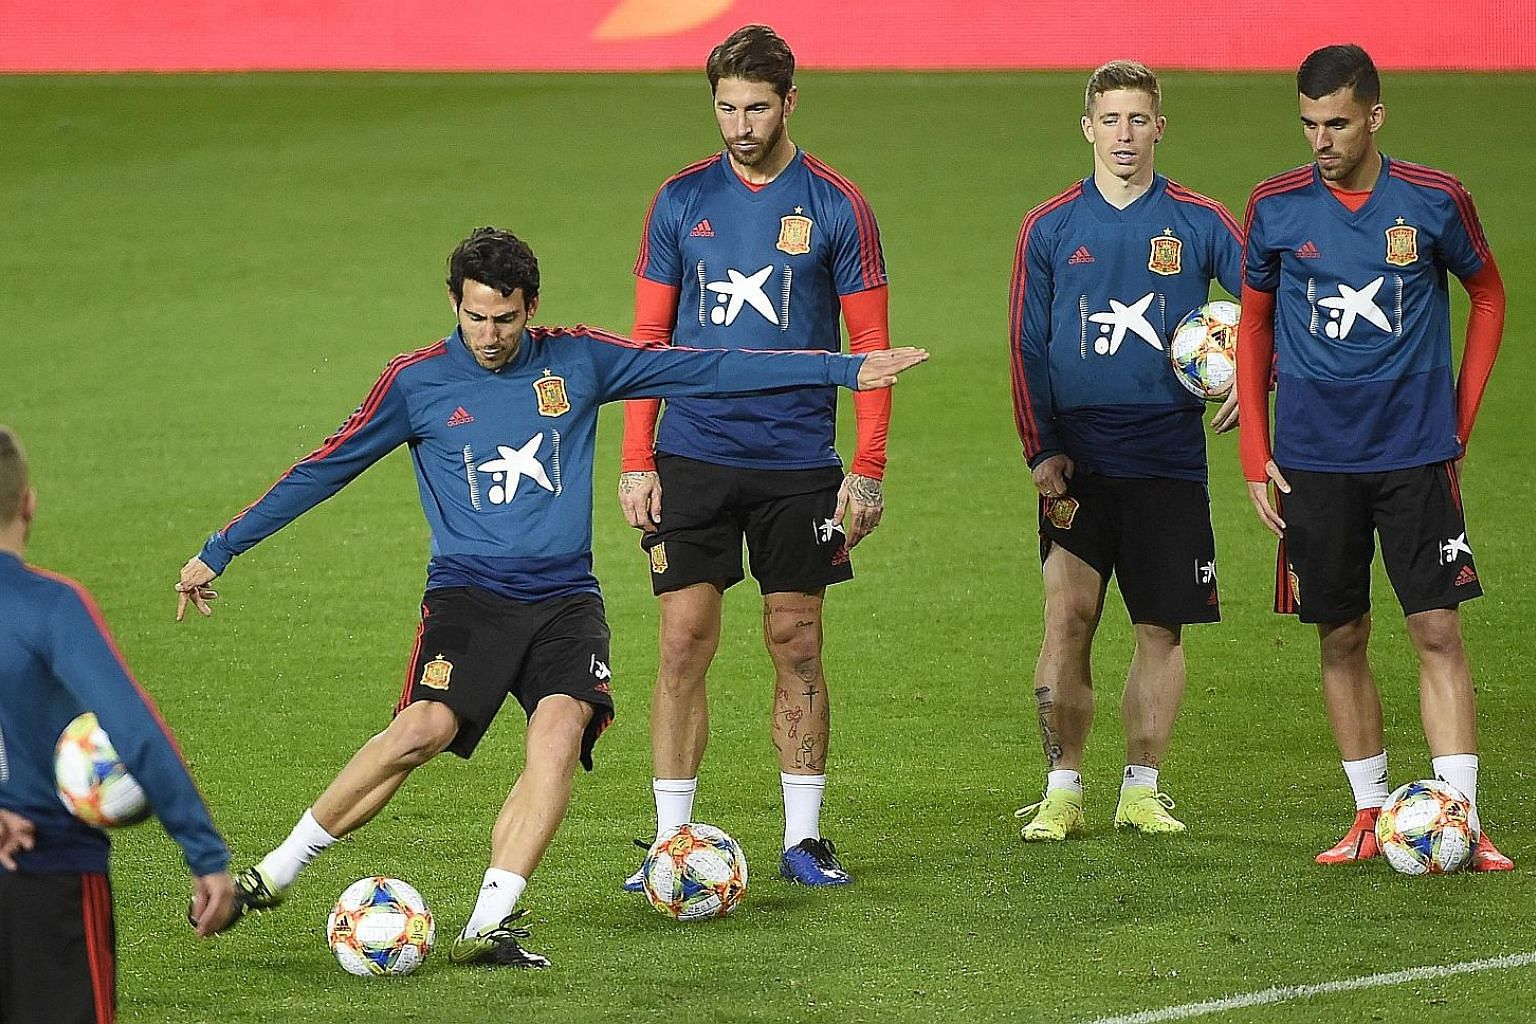 Spain midfielder Dani Parejo taking a shot during training. He could be in the starting line-up against Malta for their Euro 2020 qualifier today.